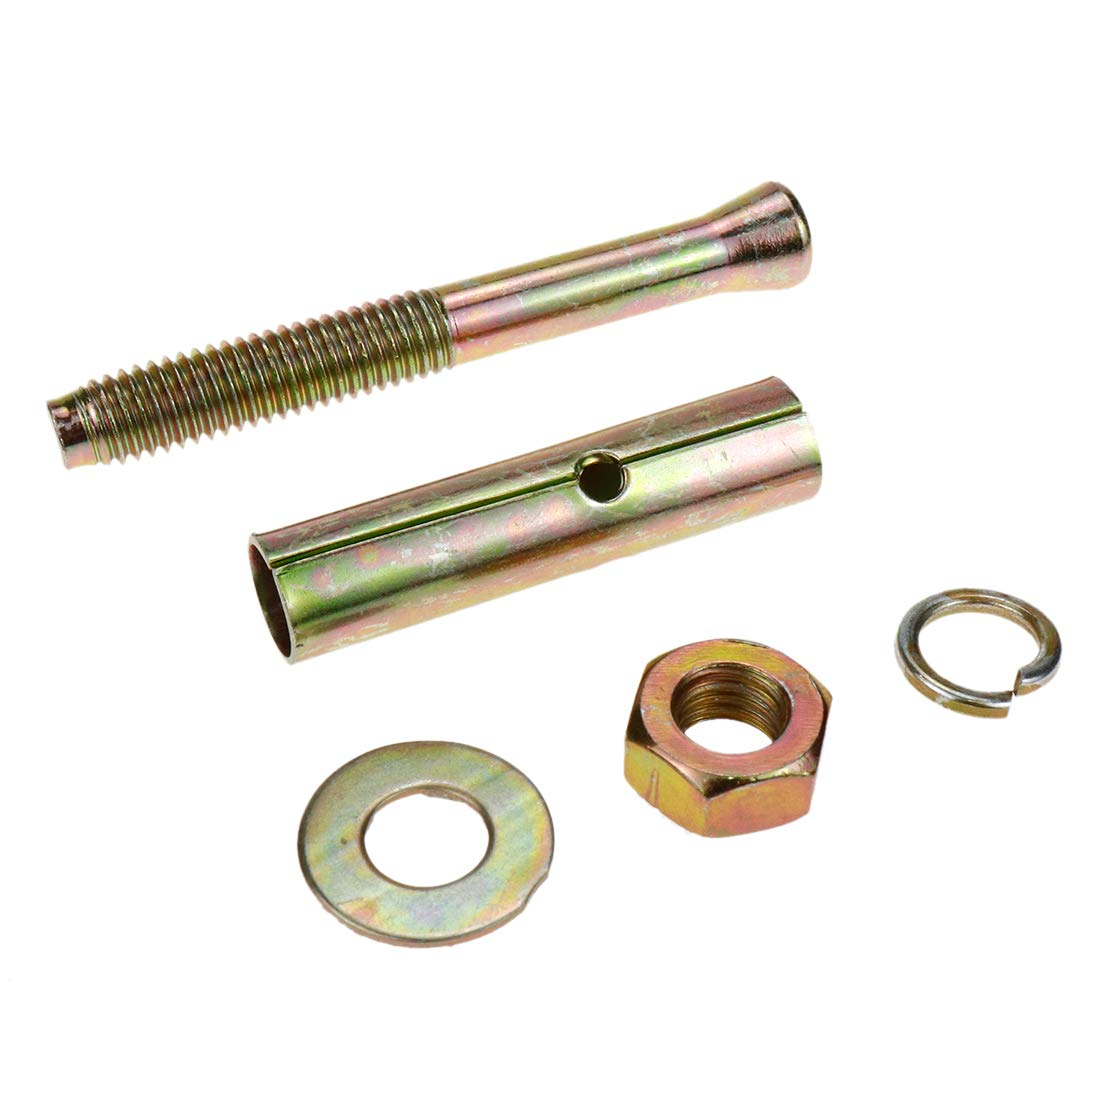 Color : M8X100 1pcs Stainless Steel Expansion Screw Shield Anchor With Hex Bolt for Bracket Connecting Fastener Air Conditioning Wall Fixing Screw